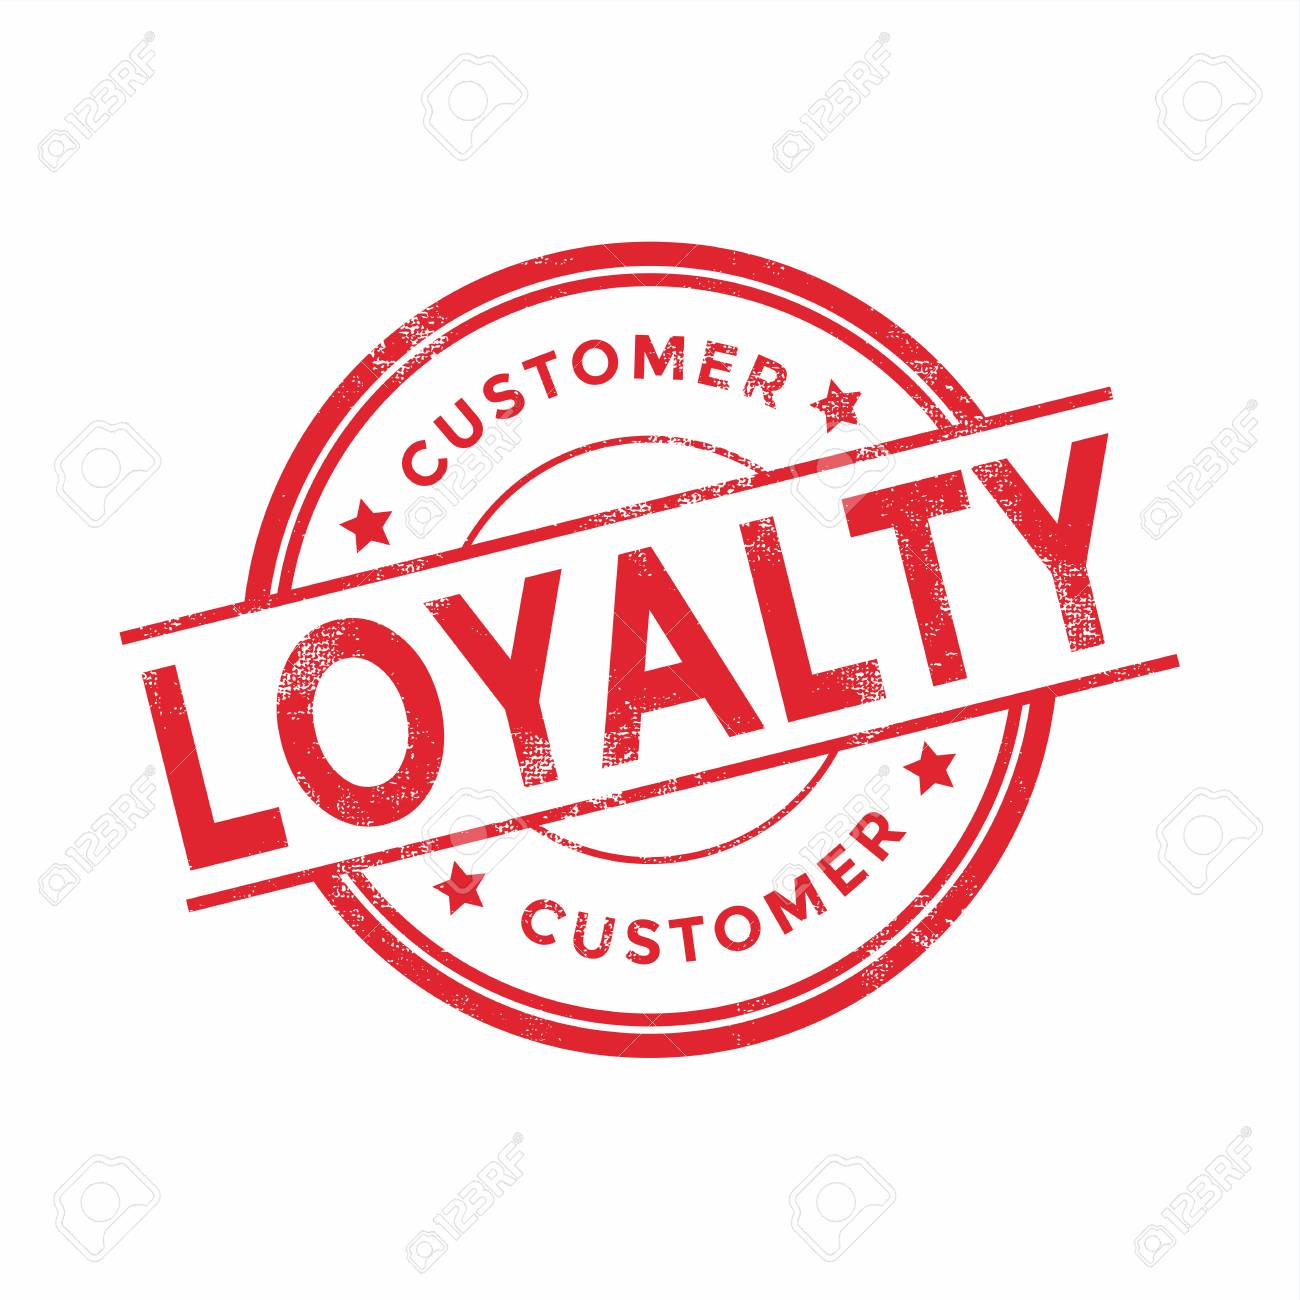 Customer Loyalty Red Rubber Stamp On White Background Vector Stock